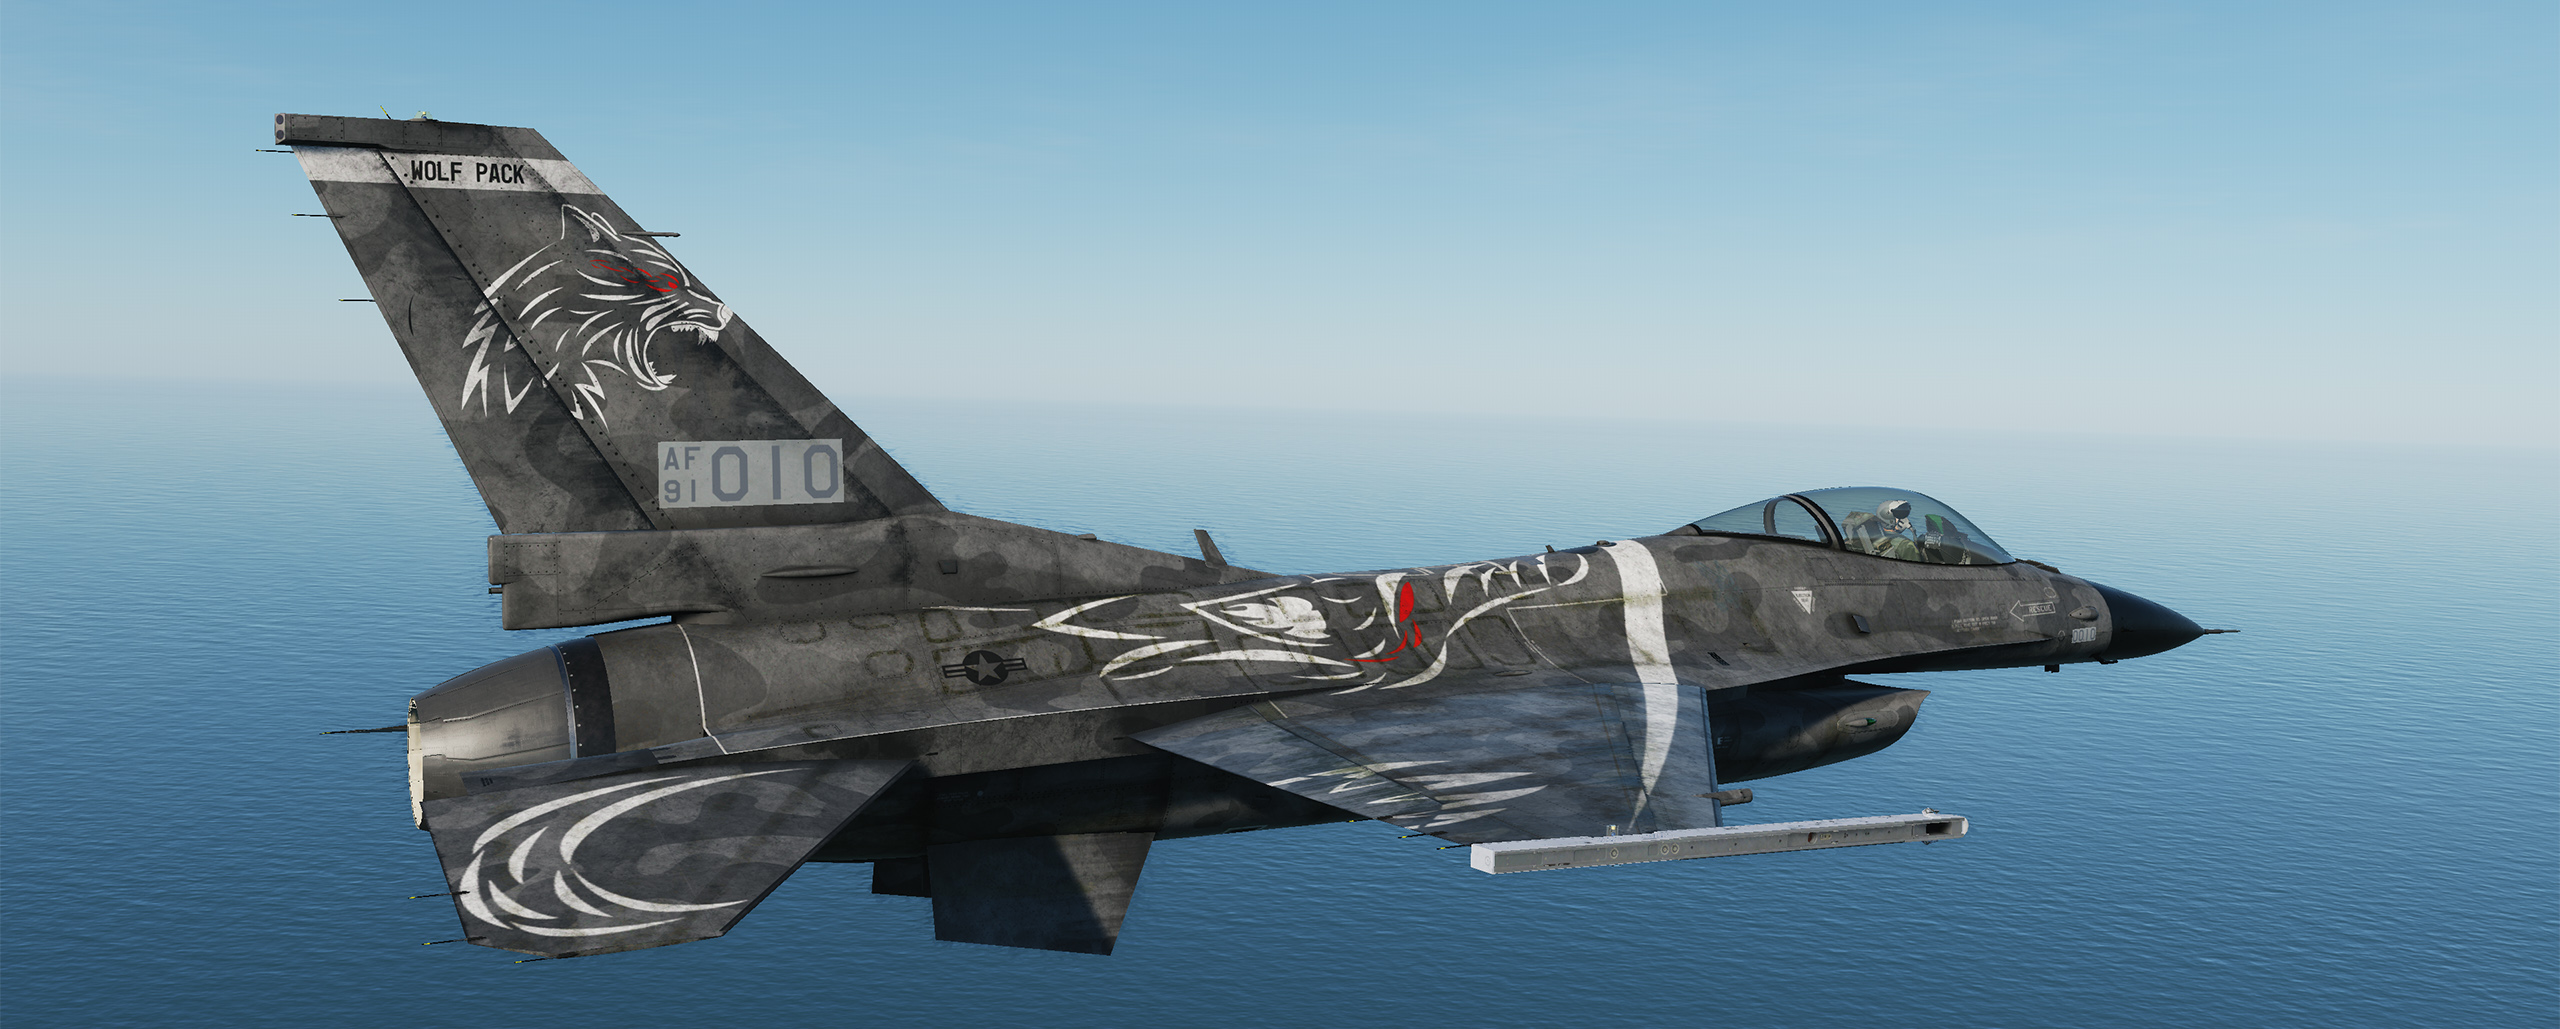 F-16C Wolf Pack [Fictional]